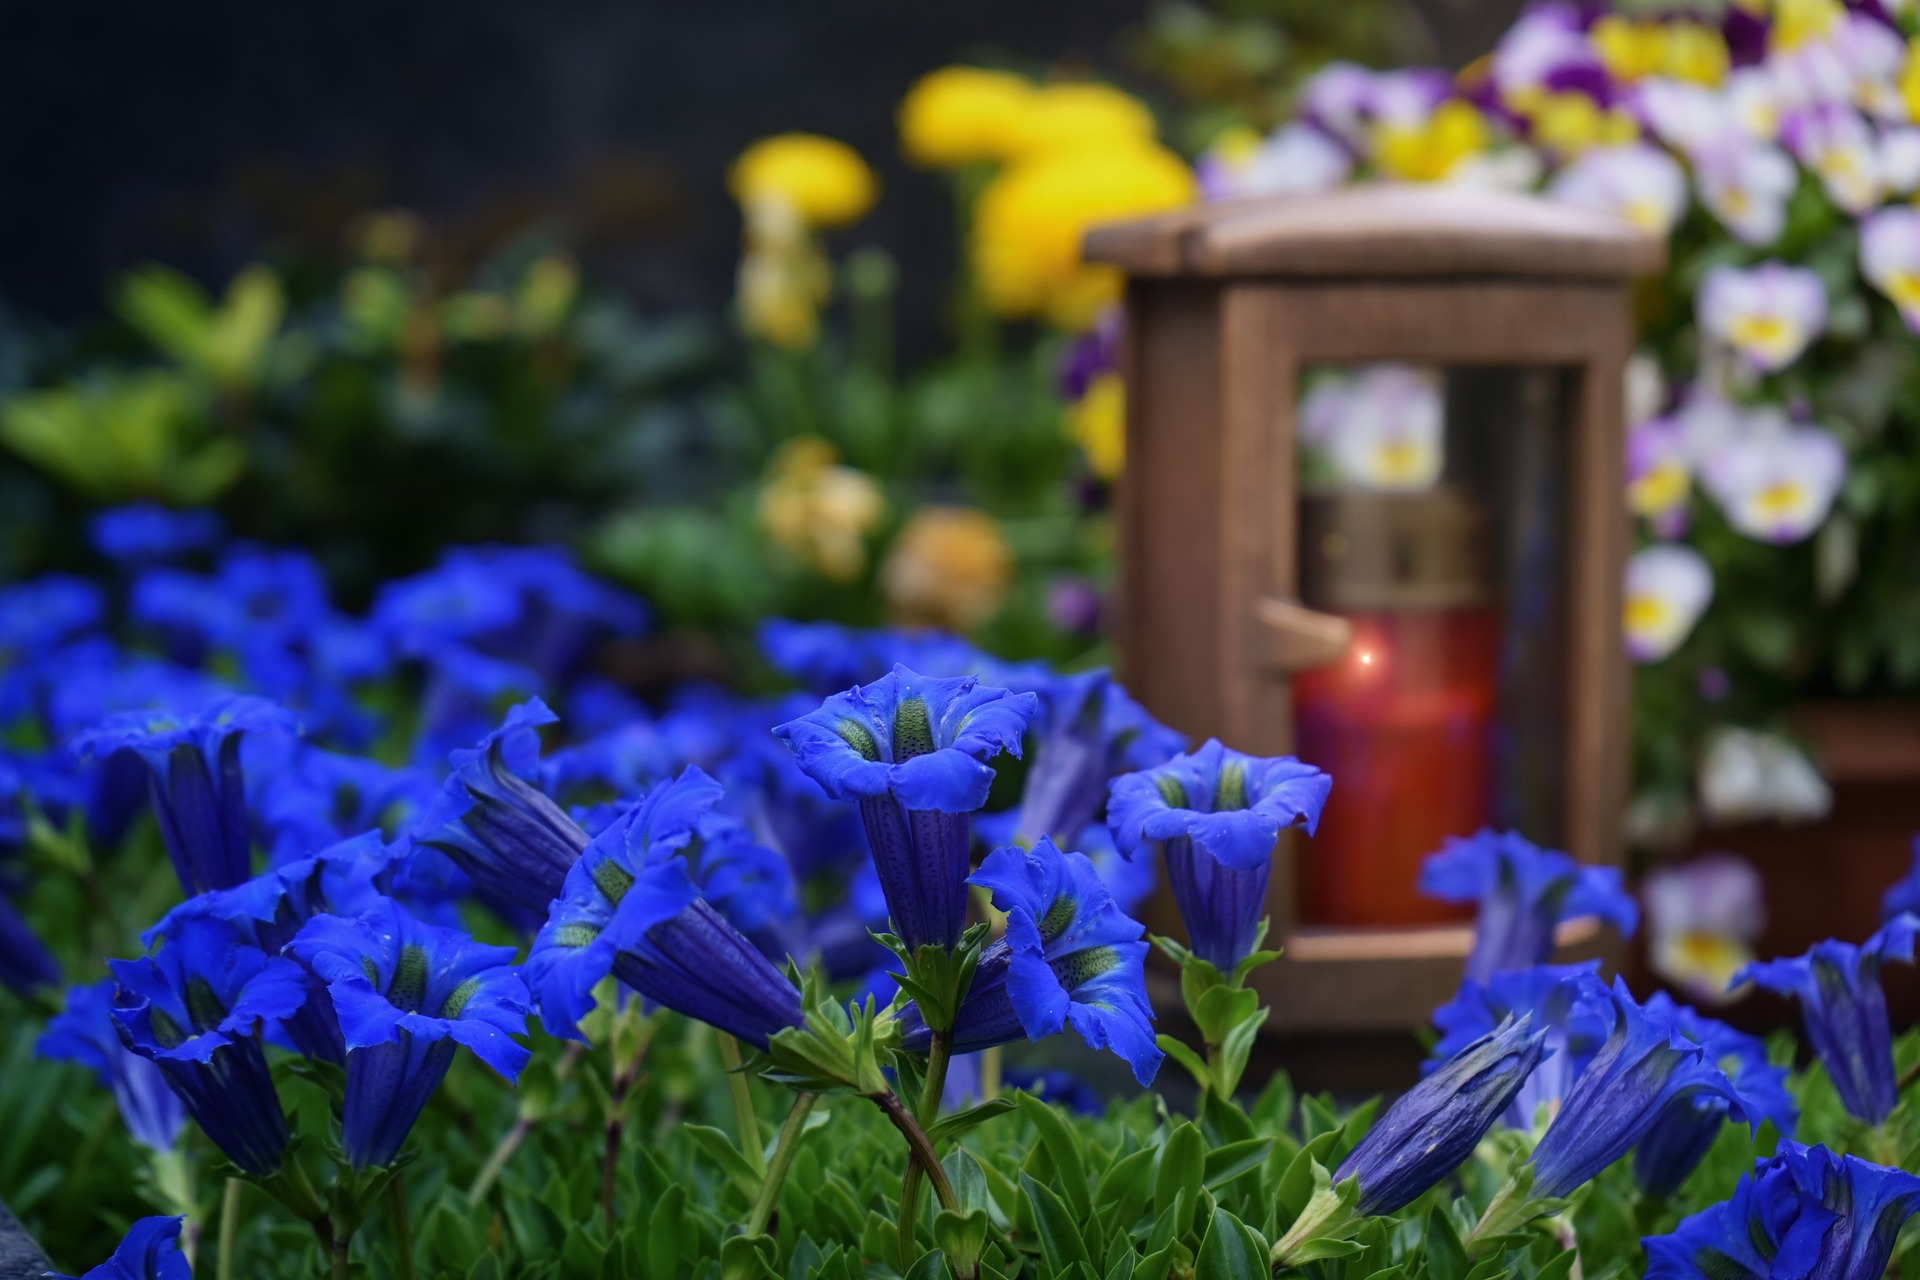 Floral Tributes - Flowers can play an important role at a funeral, a visual tribute to your loved one or friend, we understand that deciding on the right tribute is not always an easy decision.